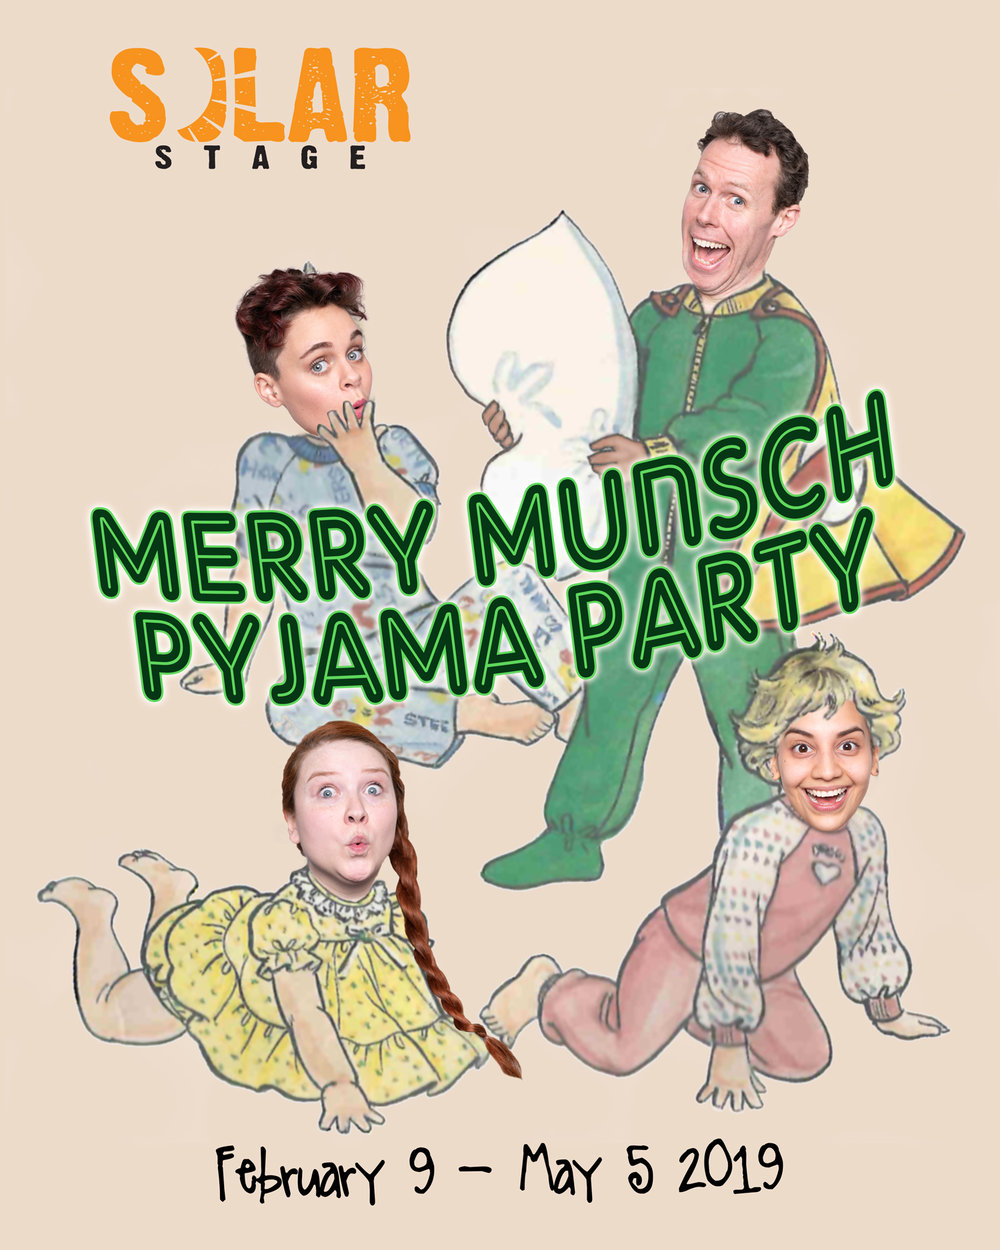 """Merry munsch pyjama party! - February 9 - May 5 2019A show for all ages, and all pyjamas!Based on """"Get Out of Bed!"""", """"Roar!"""", """"We Share Everything!"""", """"No Clean Clothes"""", and """"Pyjama Day!"""" by Robert MunschRecommended for ages 3 and upAudience is encouraged to dress in their pyjamas!"""